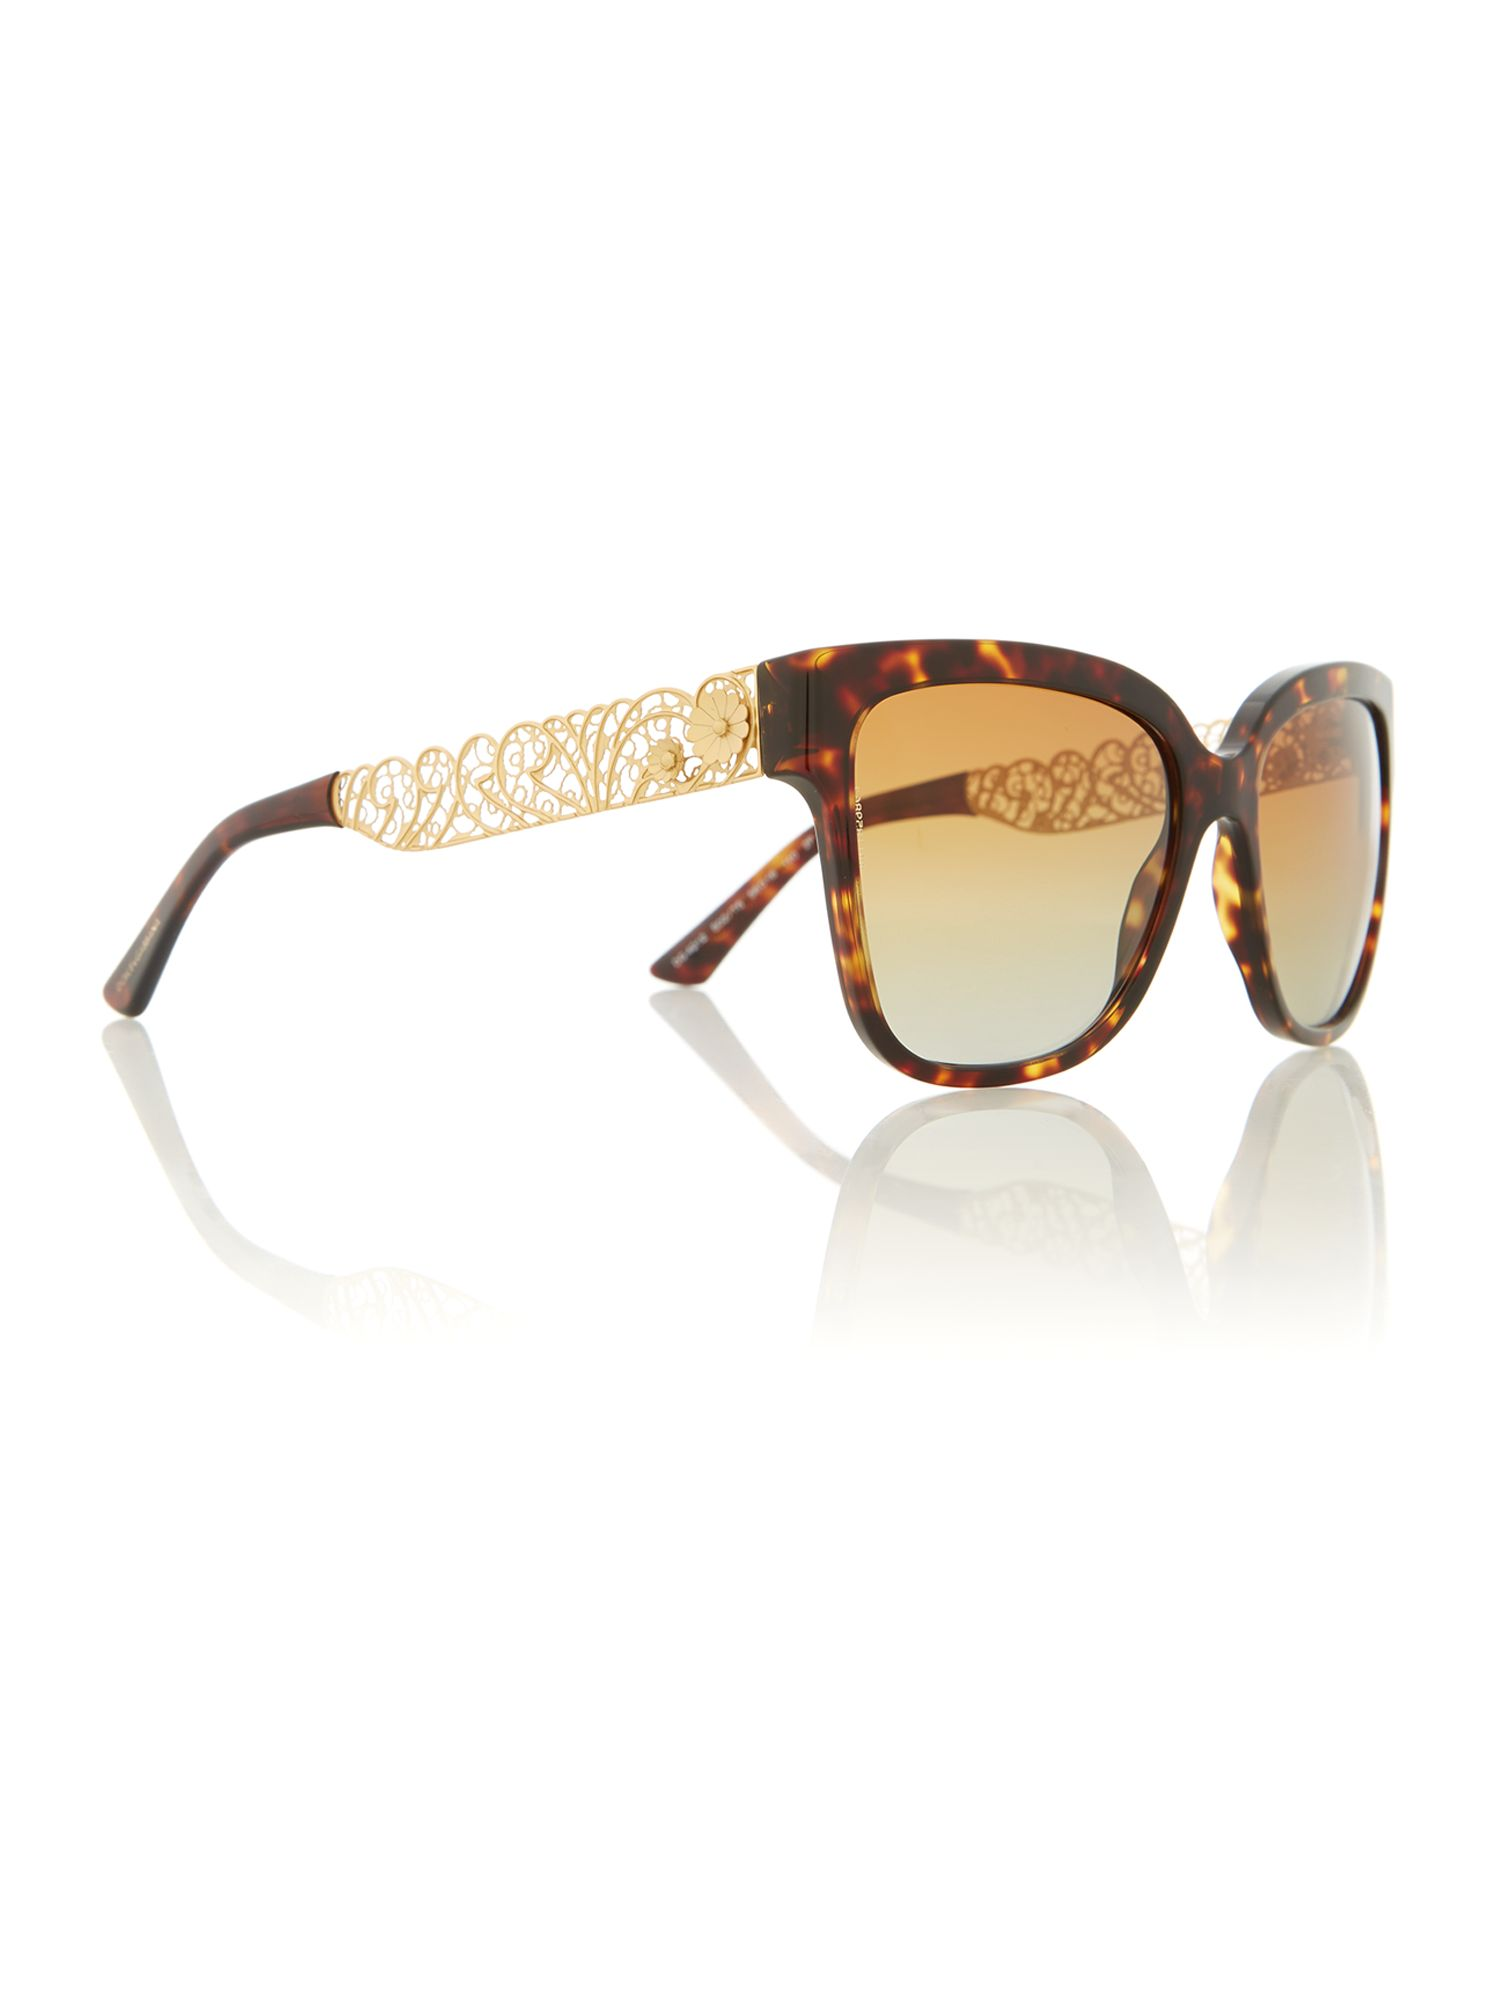 Ladies dg4212 sunglasses